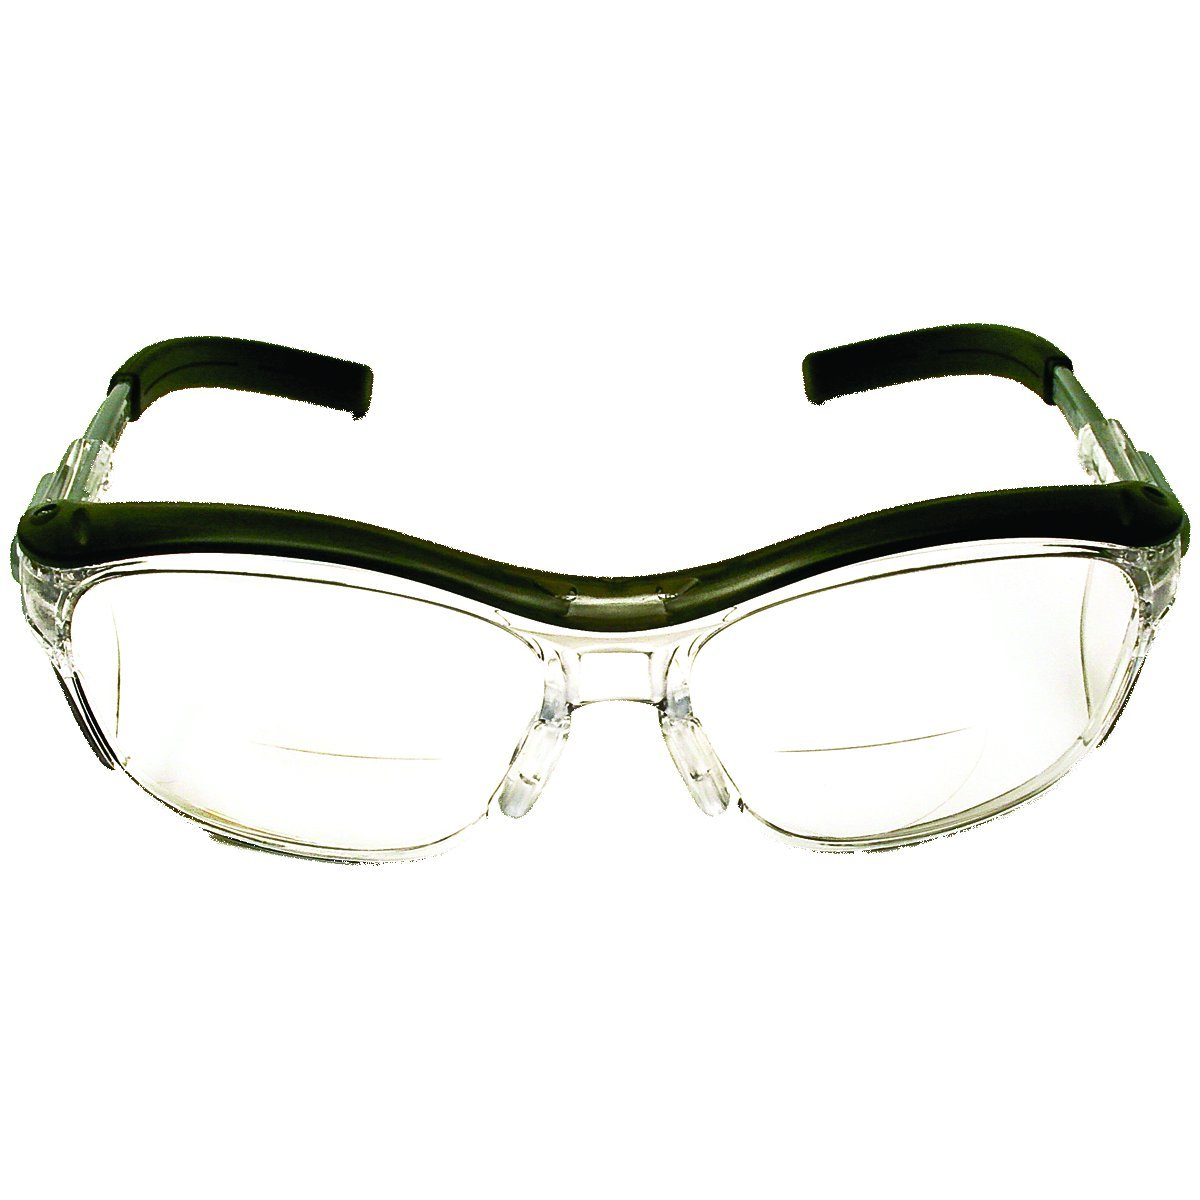 3M Nuvo Reader Protective Eyewear, 11434-00000-20 Clear Lens, Gray Frame, +1.5 Diopter(Pack of 1)